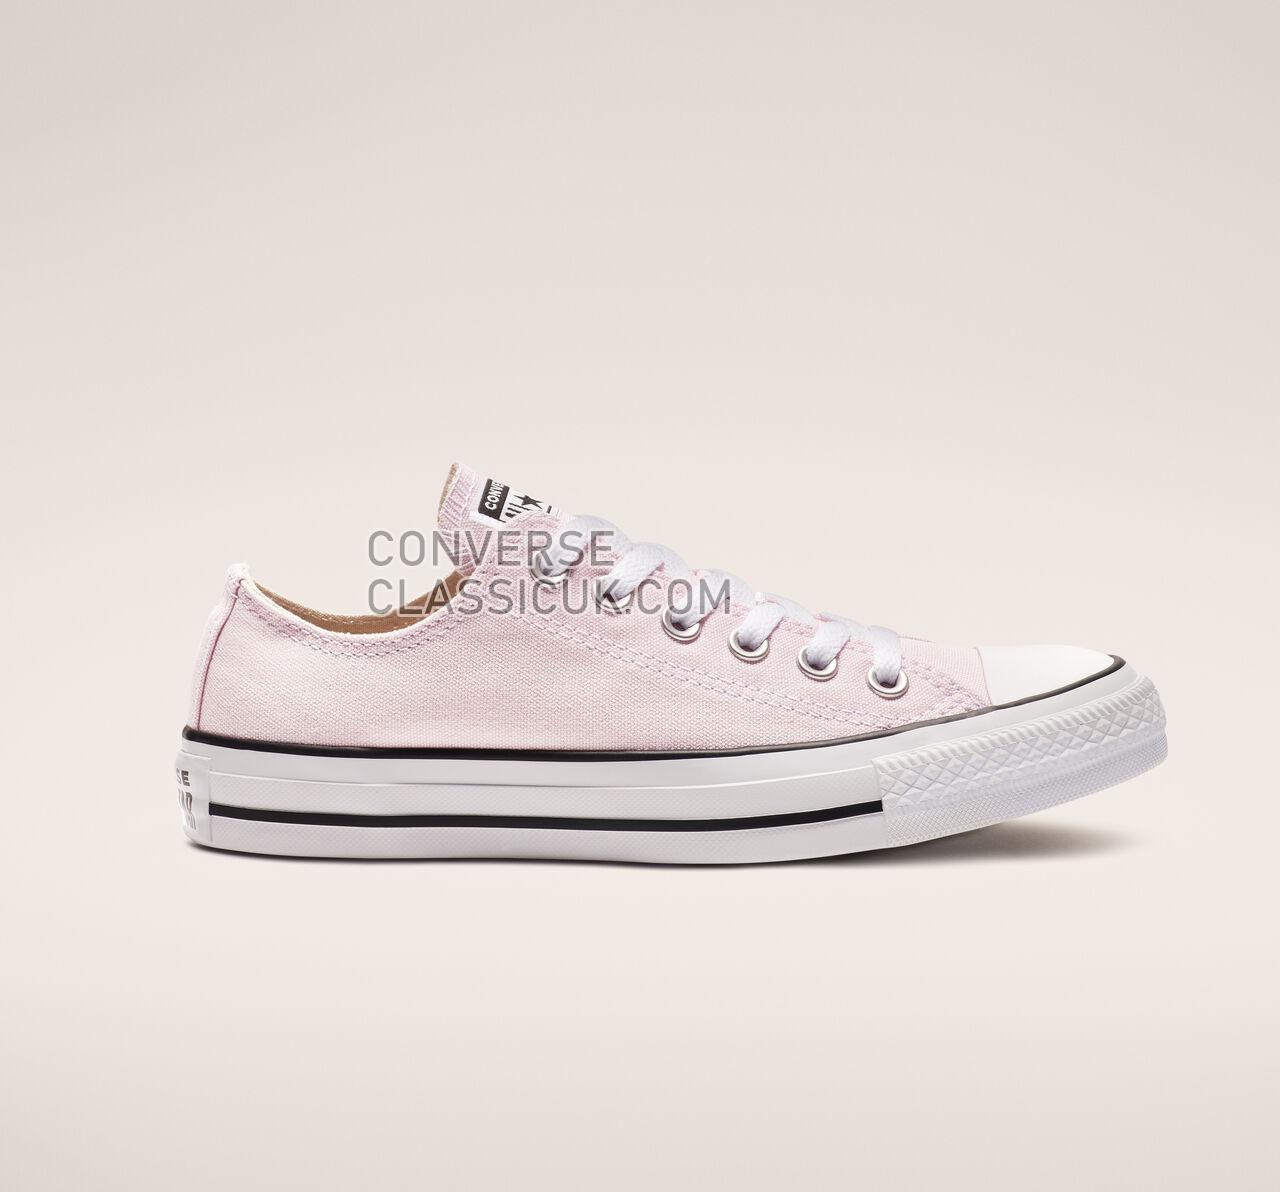 Converse Chuck Taylor All Star Seasonal Color Low Top Mens Womens Unisex 163358F Pink Foam Shoes